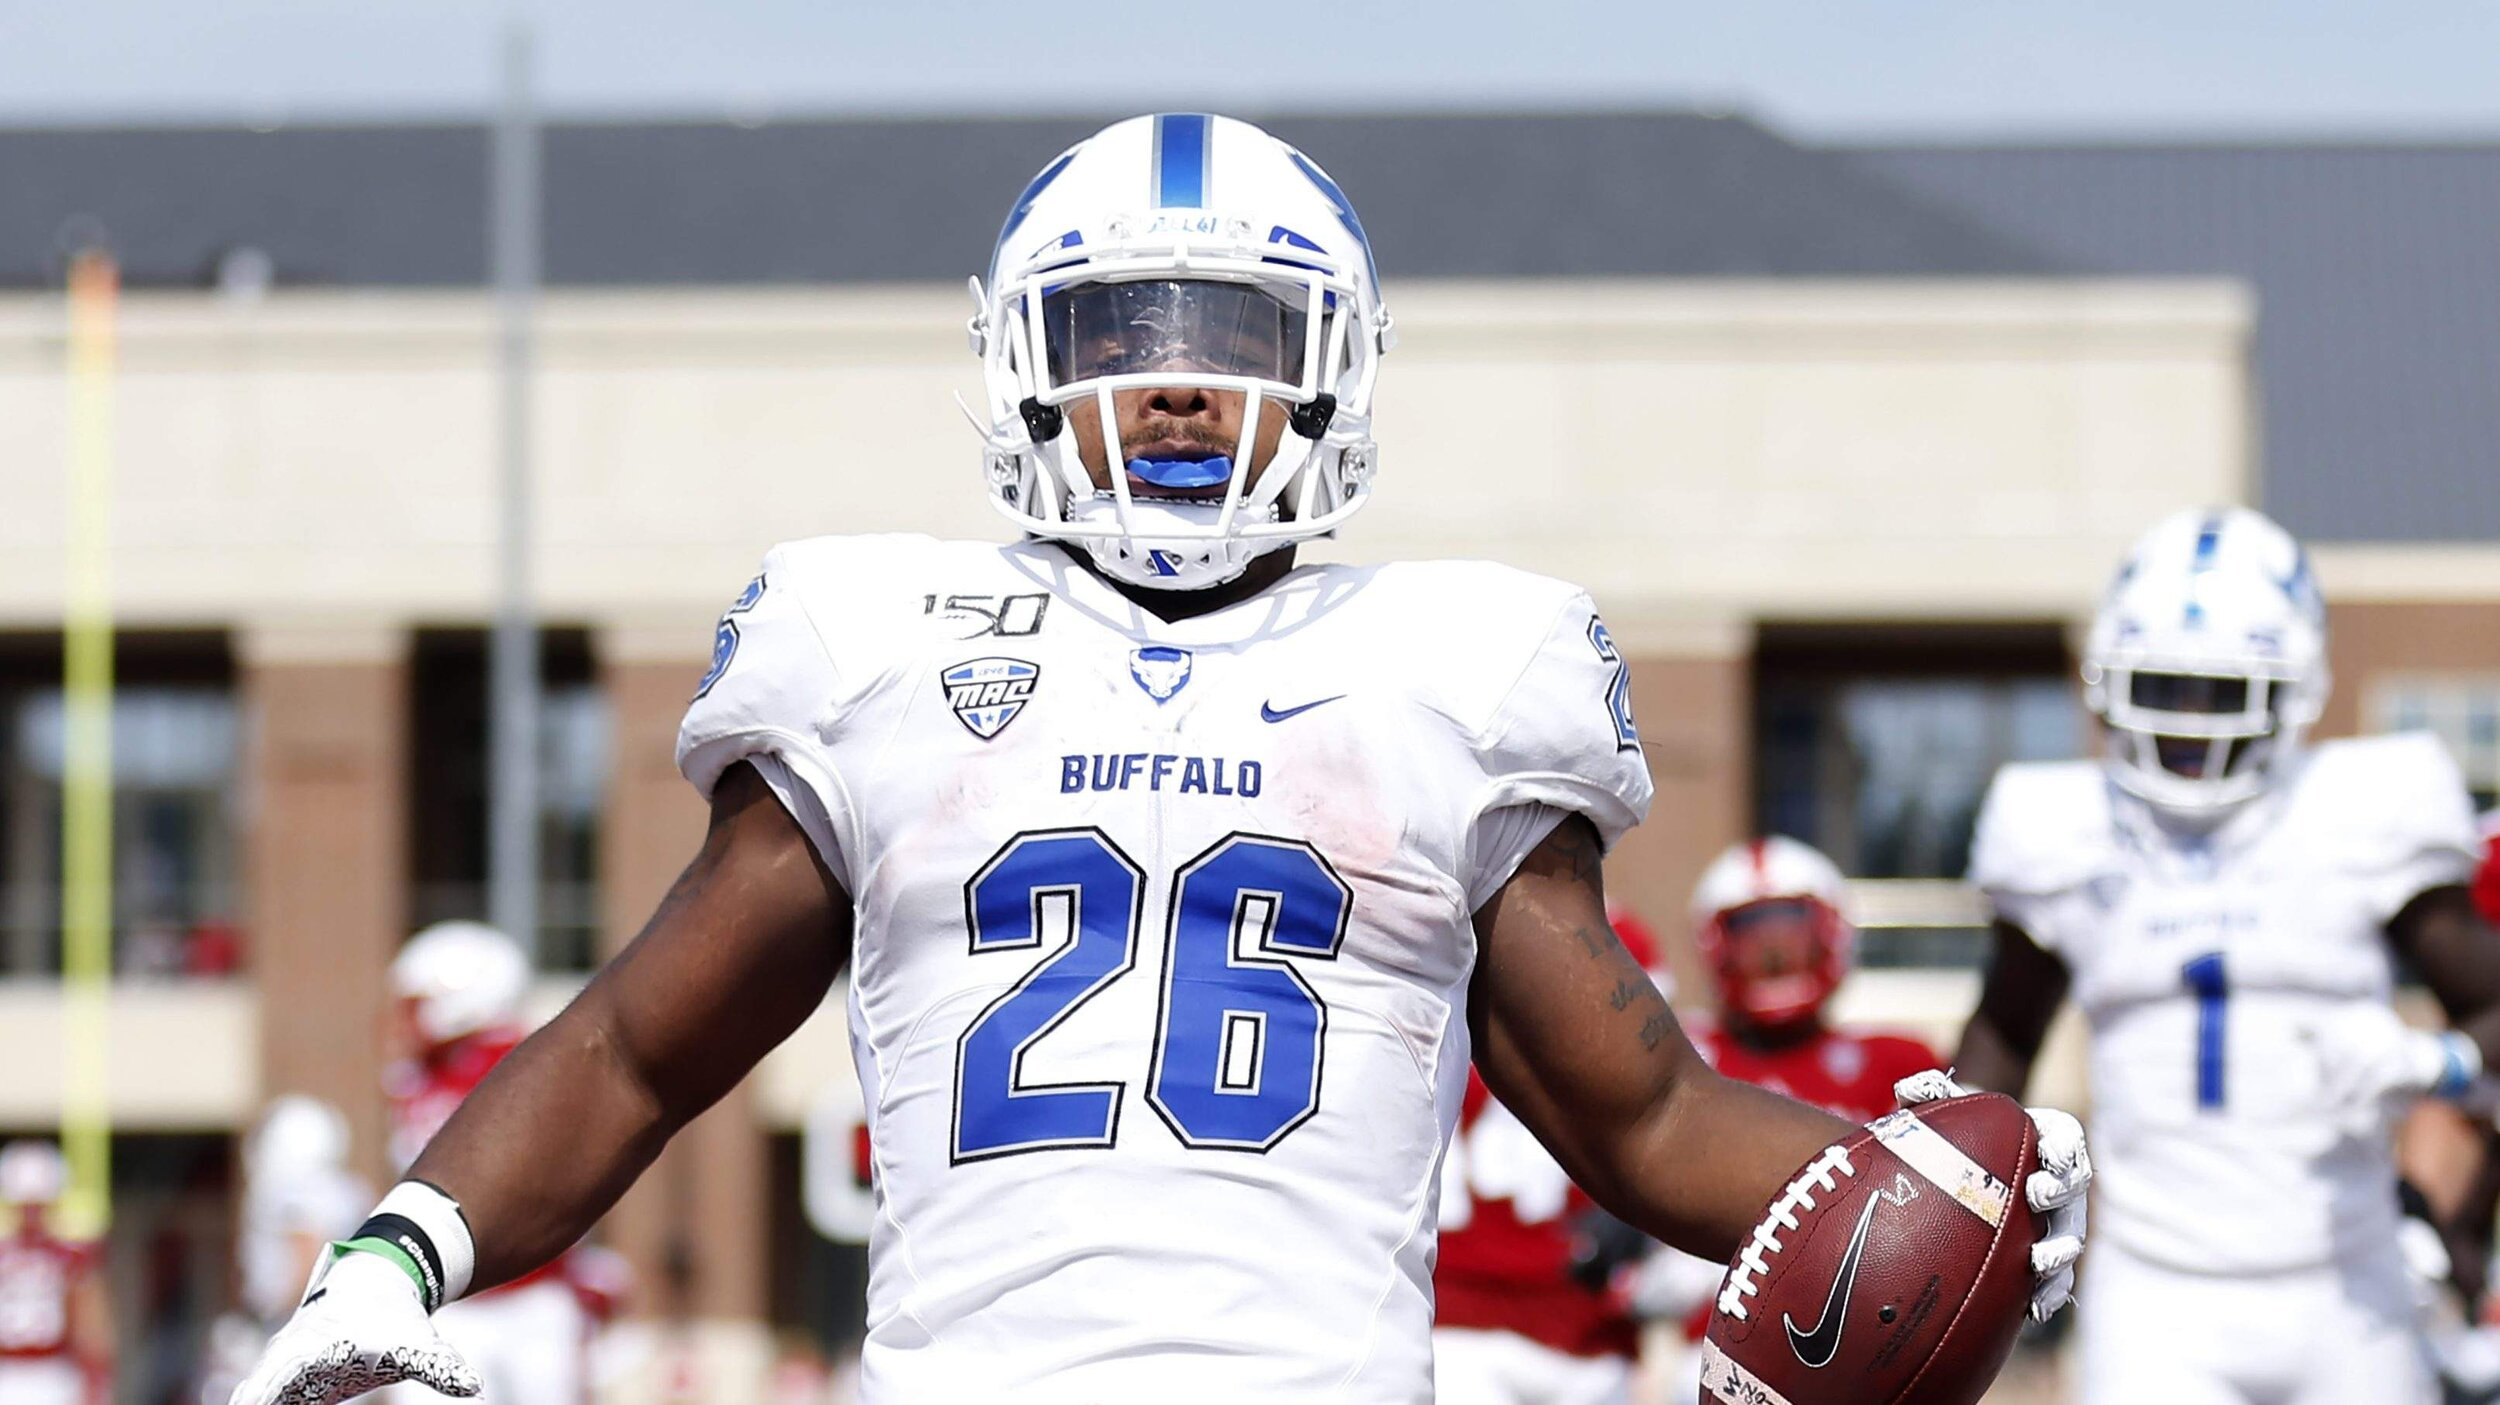 Jaret Patterson (26) Was the first U of Buffalo player to win Walter Camp Player of the Week. (Courtesy Photo)